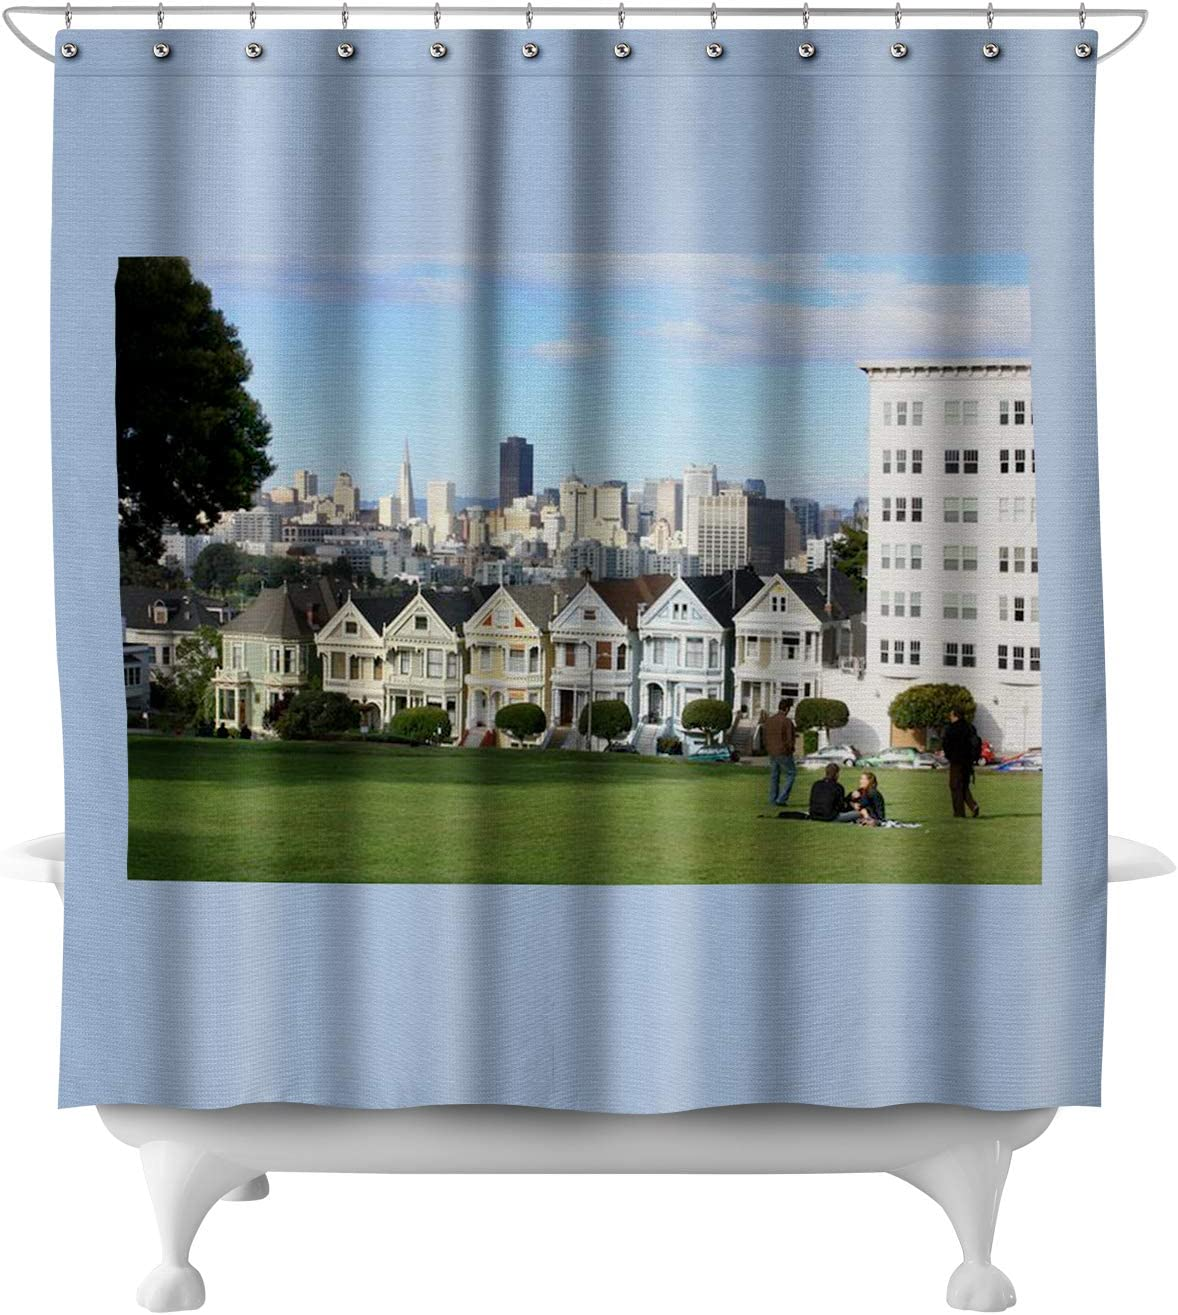 Amazon Com San Francisco California Alamo Square Painted Ladies Houses A 9006122 71x74 Polyester Shower Curtain Posters Prints